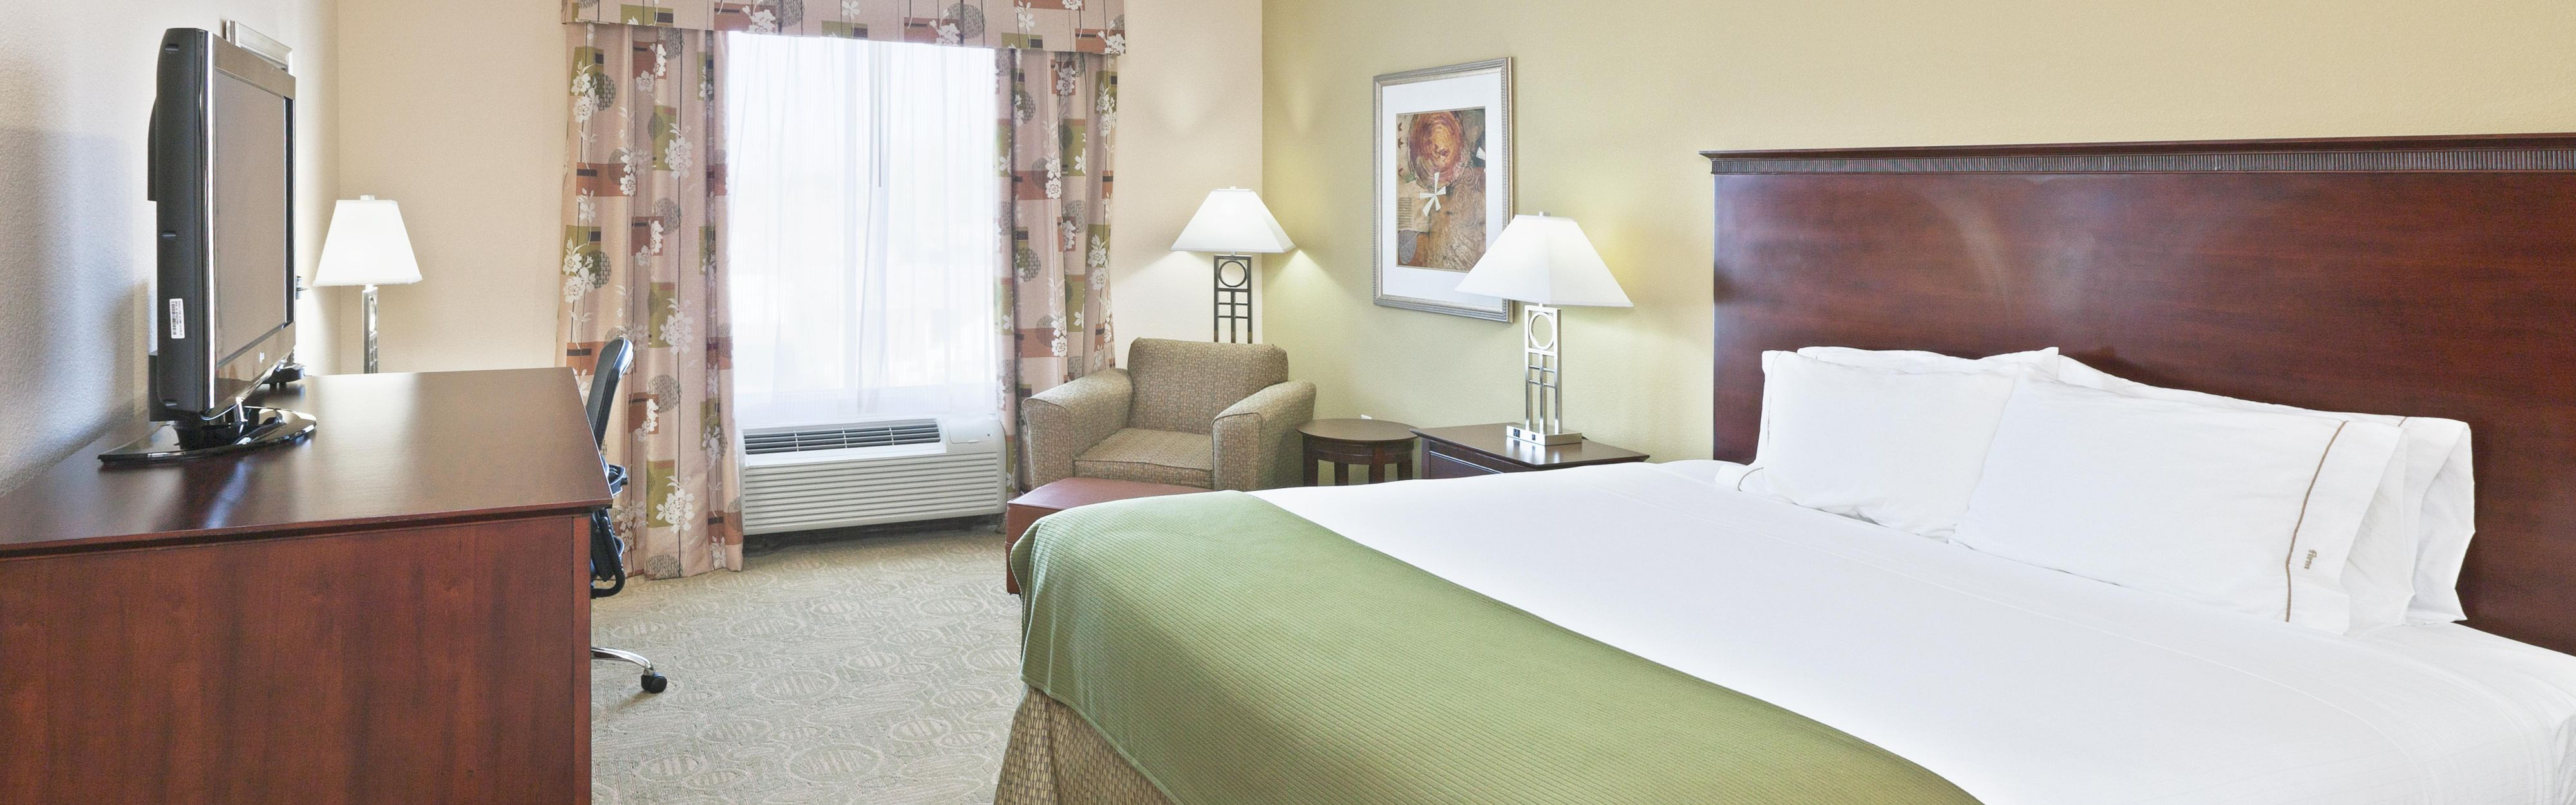 Holiday Inn Express & Suites Brownfield image 1